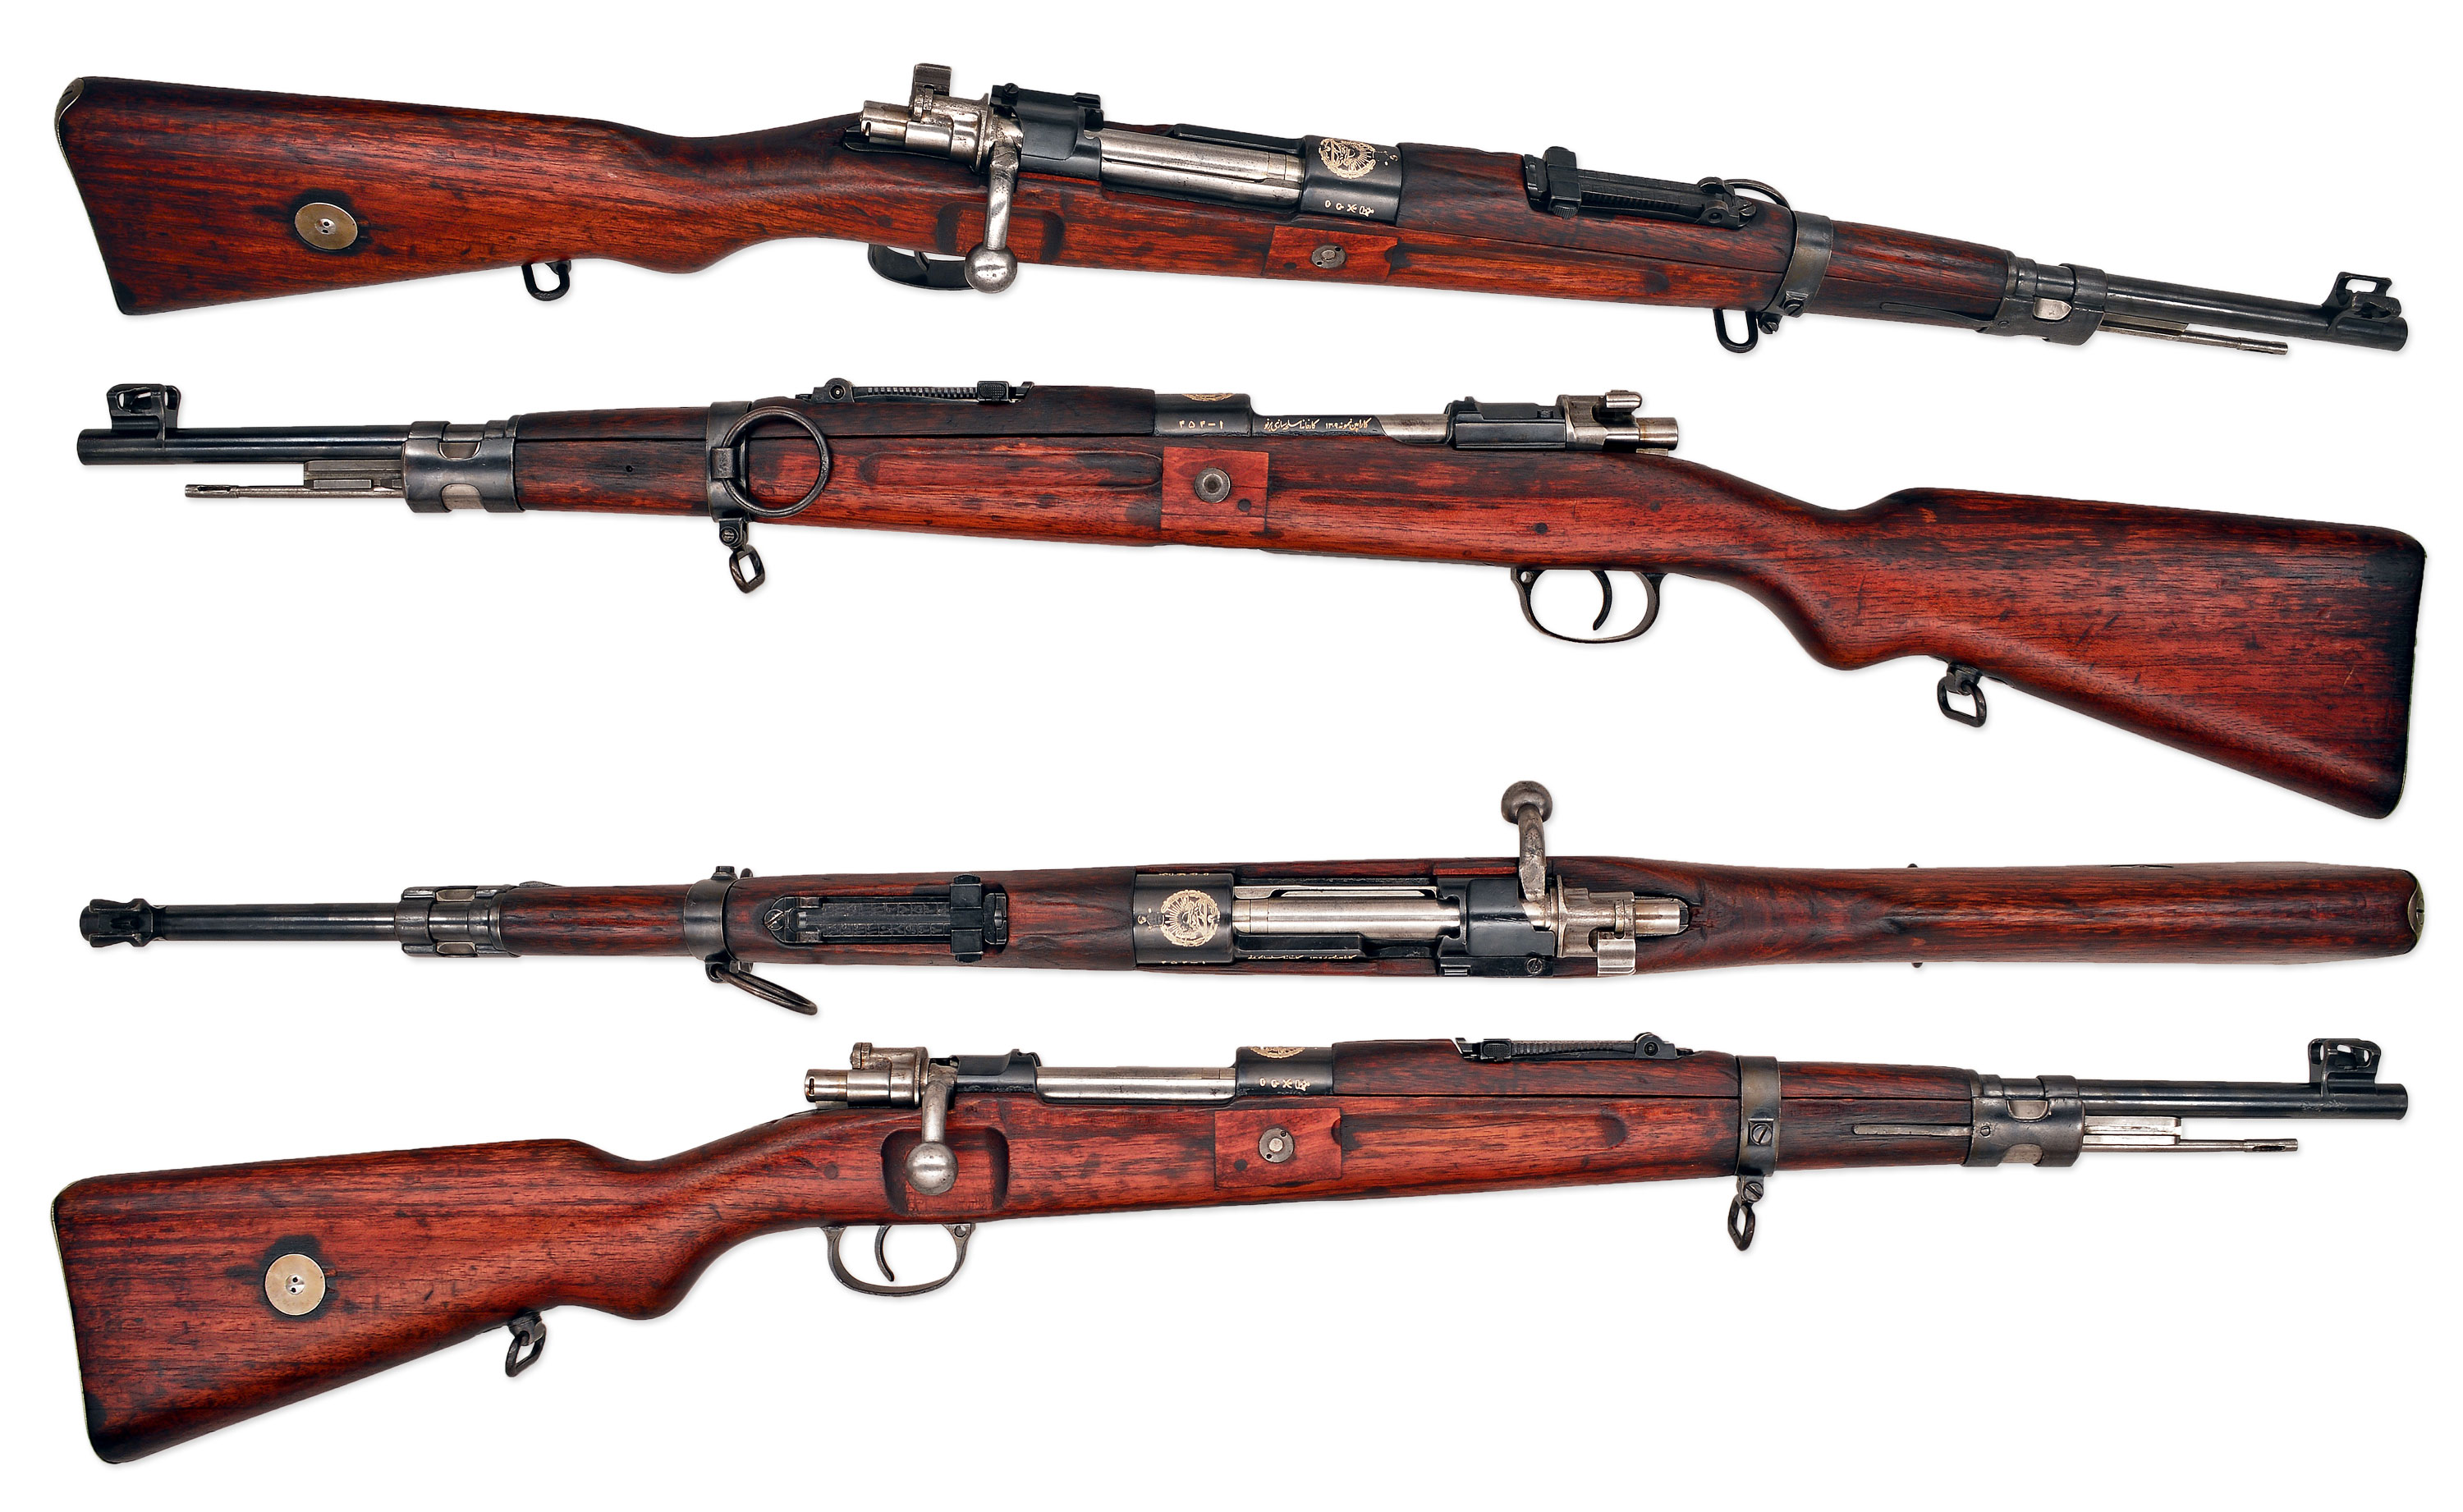 Mauser Rifle Backgrounds on Wallpapers Vista